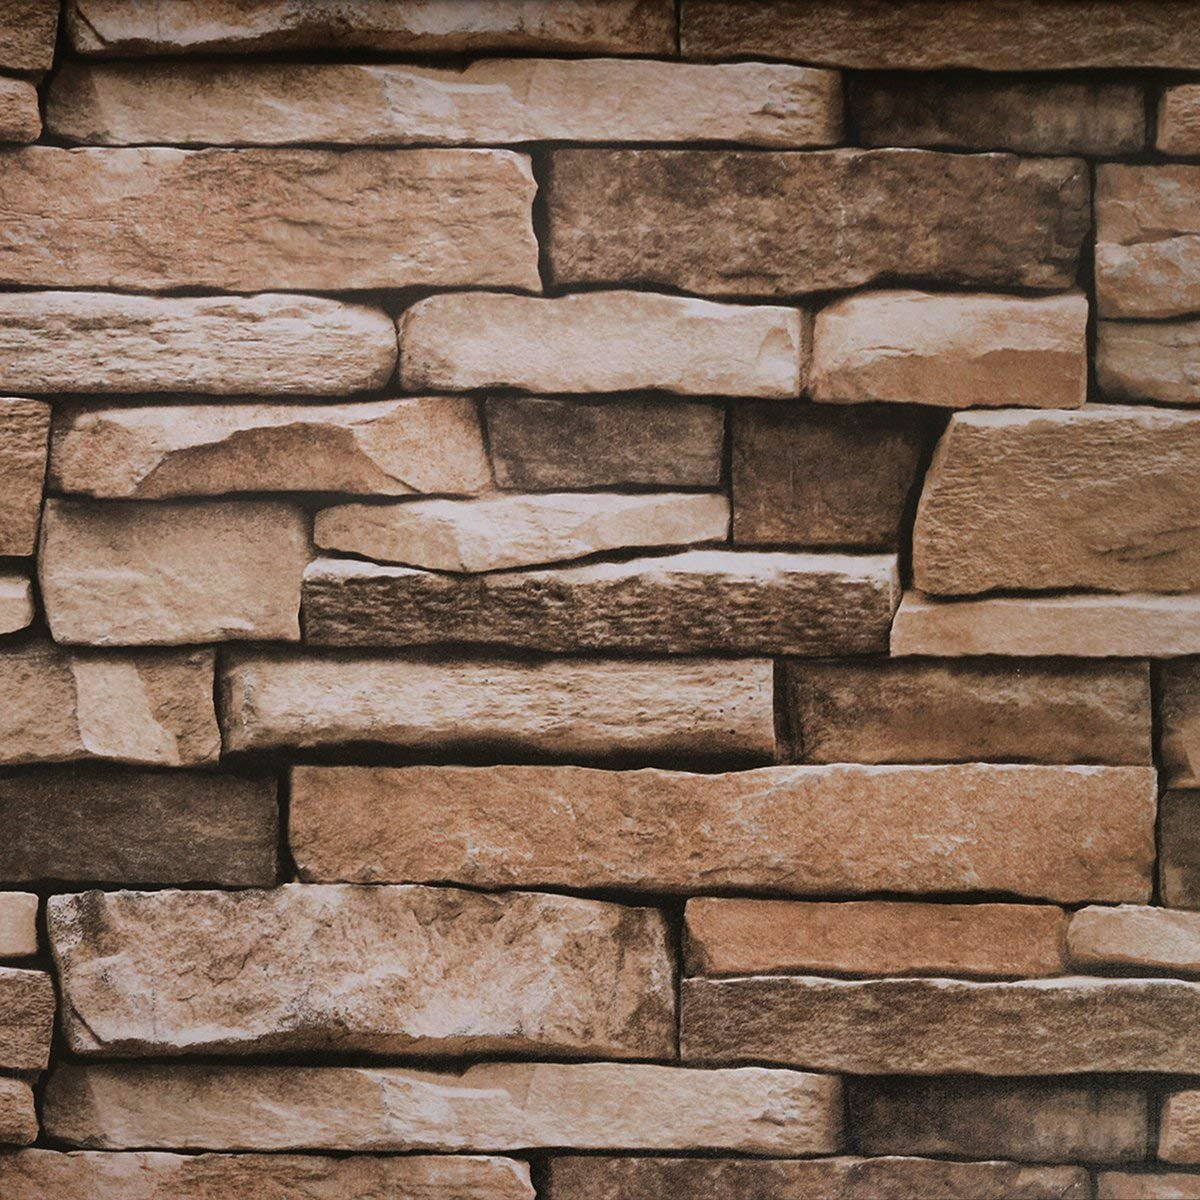 """Stone Peel and Stick Wallpaper - Self Adhesive Wallpaper - Easily Removable Wallpaper - 3D Wallpaper Stone Look – Use as Wall Paper, Contact Paper, or Shelf Paper - 17.71"""" Wide x 177"""" Long"""